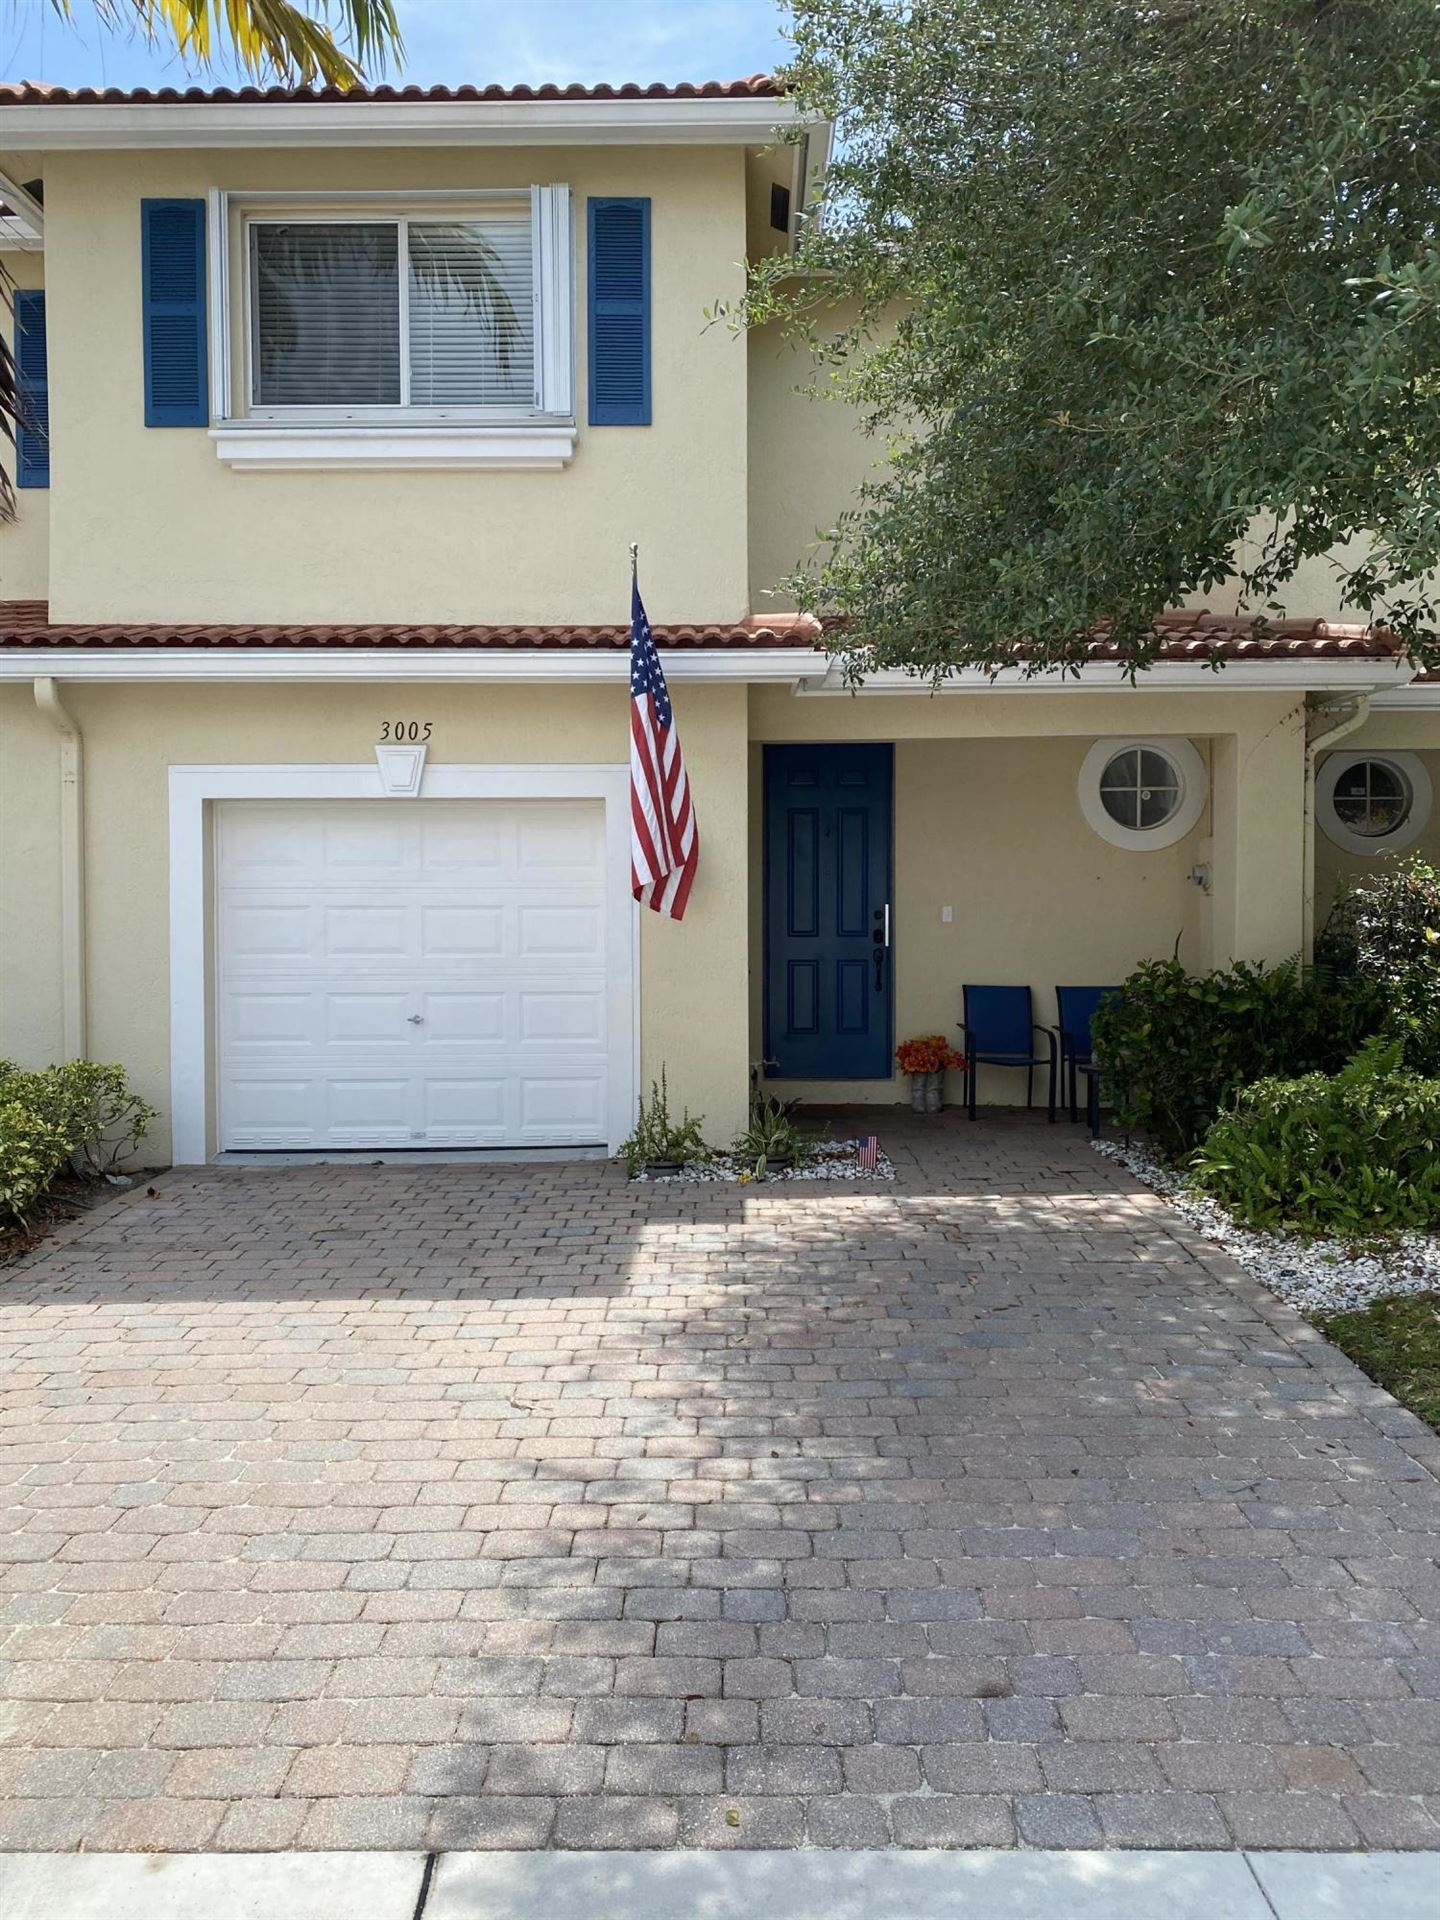 Photo of 3005 N Evergreen Circle, Boynton Beach, FL 33426 (MLS # RX-10714925)